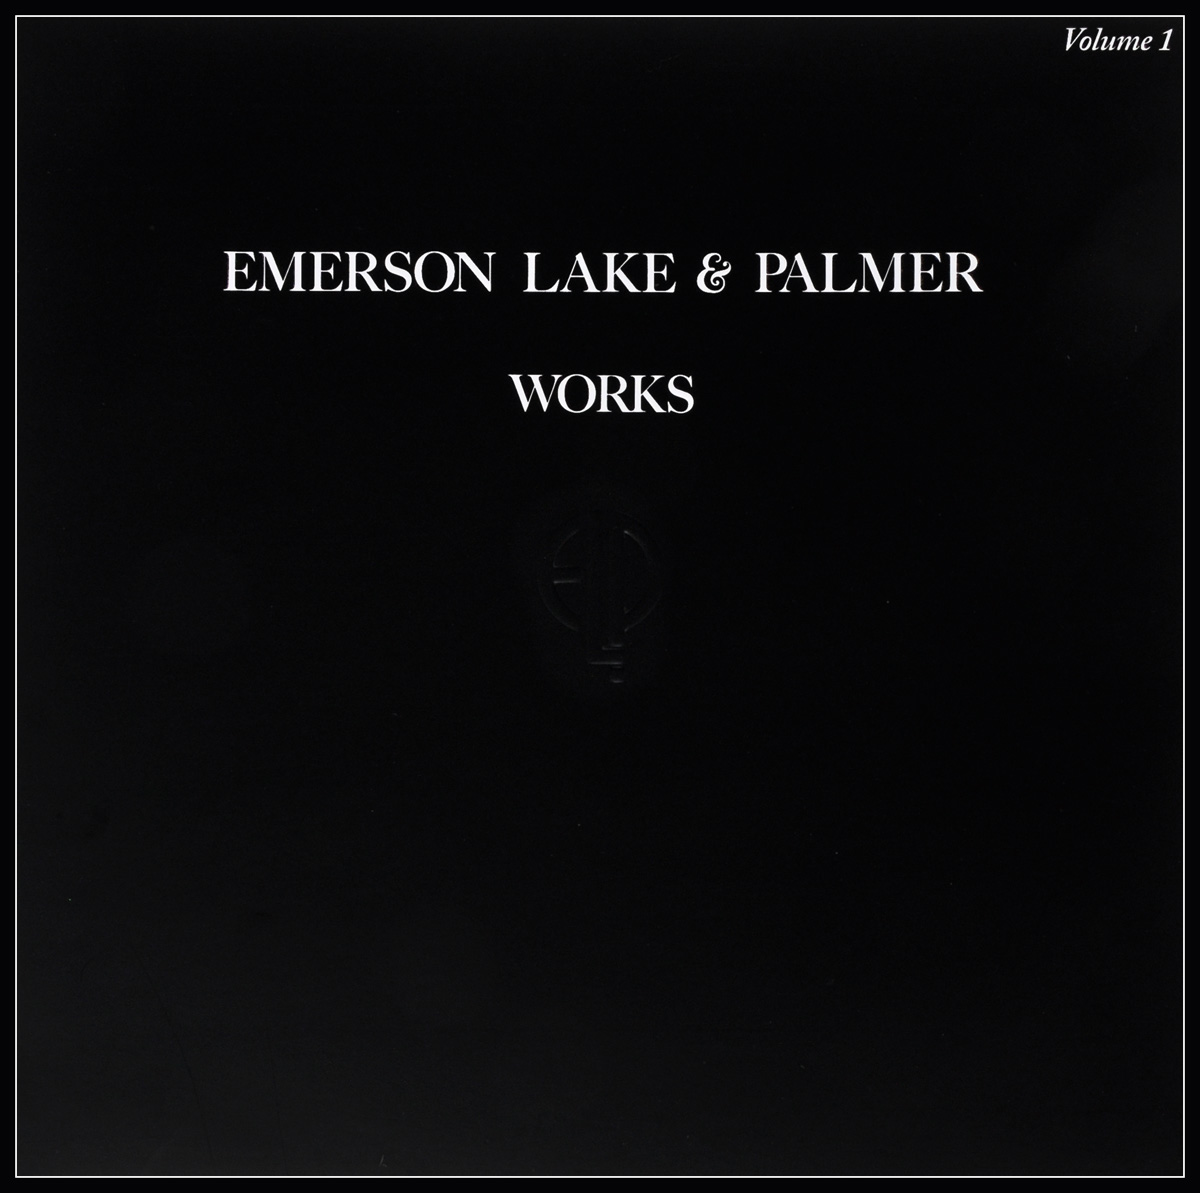 Emerson, Lake & Palmer Emerson, Lake & Palmer. Works Volume 1 (2 LP) deconnick stegman palmer sif